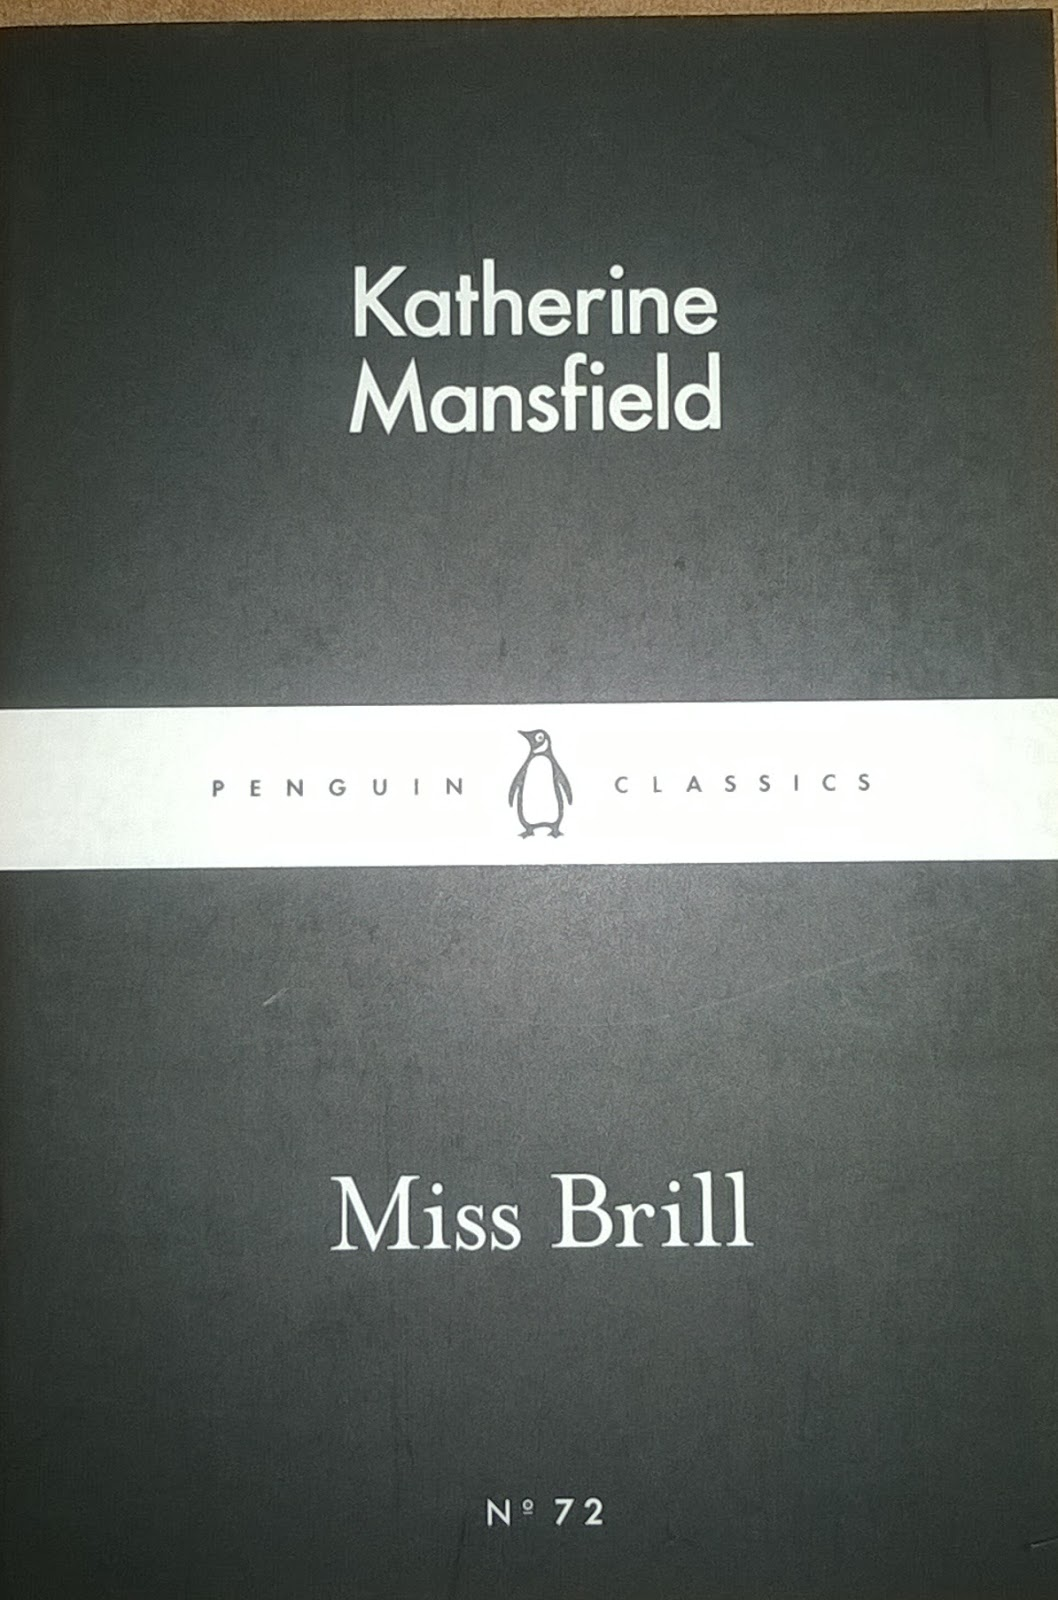 miss brill by simply katherine mansfield level about view